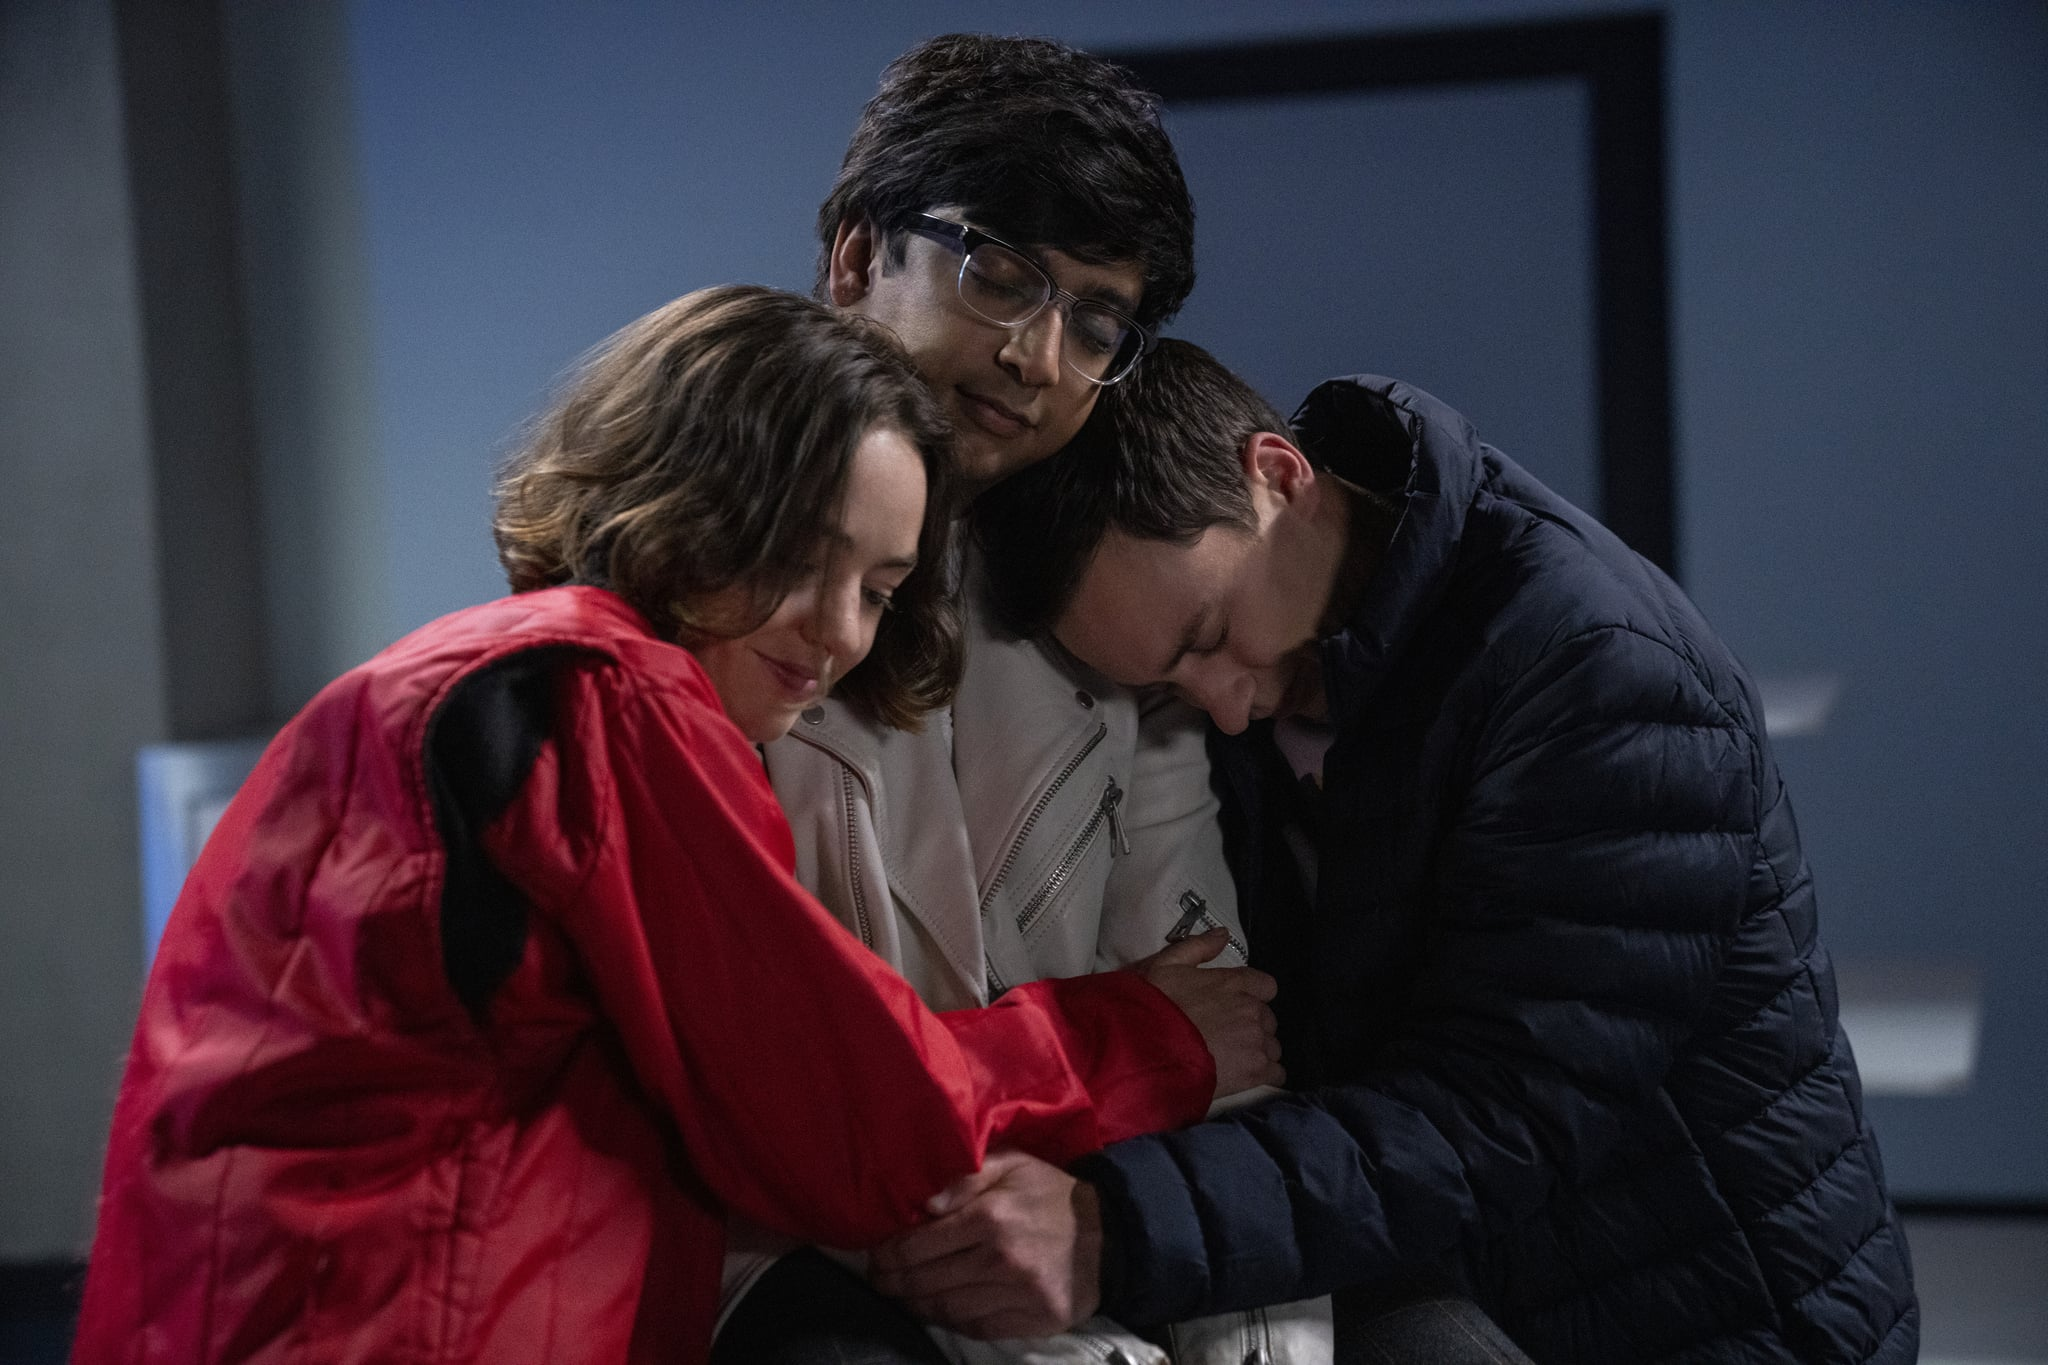 ATYPICAL (L to R) BRIGETTE LUNDY-PAINE as CASEY GARDNER, NIK DODANI as ZAHID, and KEIR GILCHRIST as SAM GARDNER in episode 409 of ATYPICAL Cr. GREG GAYNE/NETFLIX © 2021